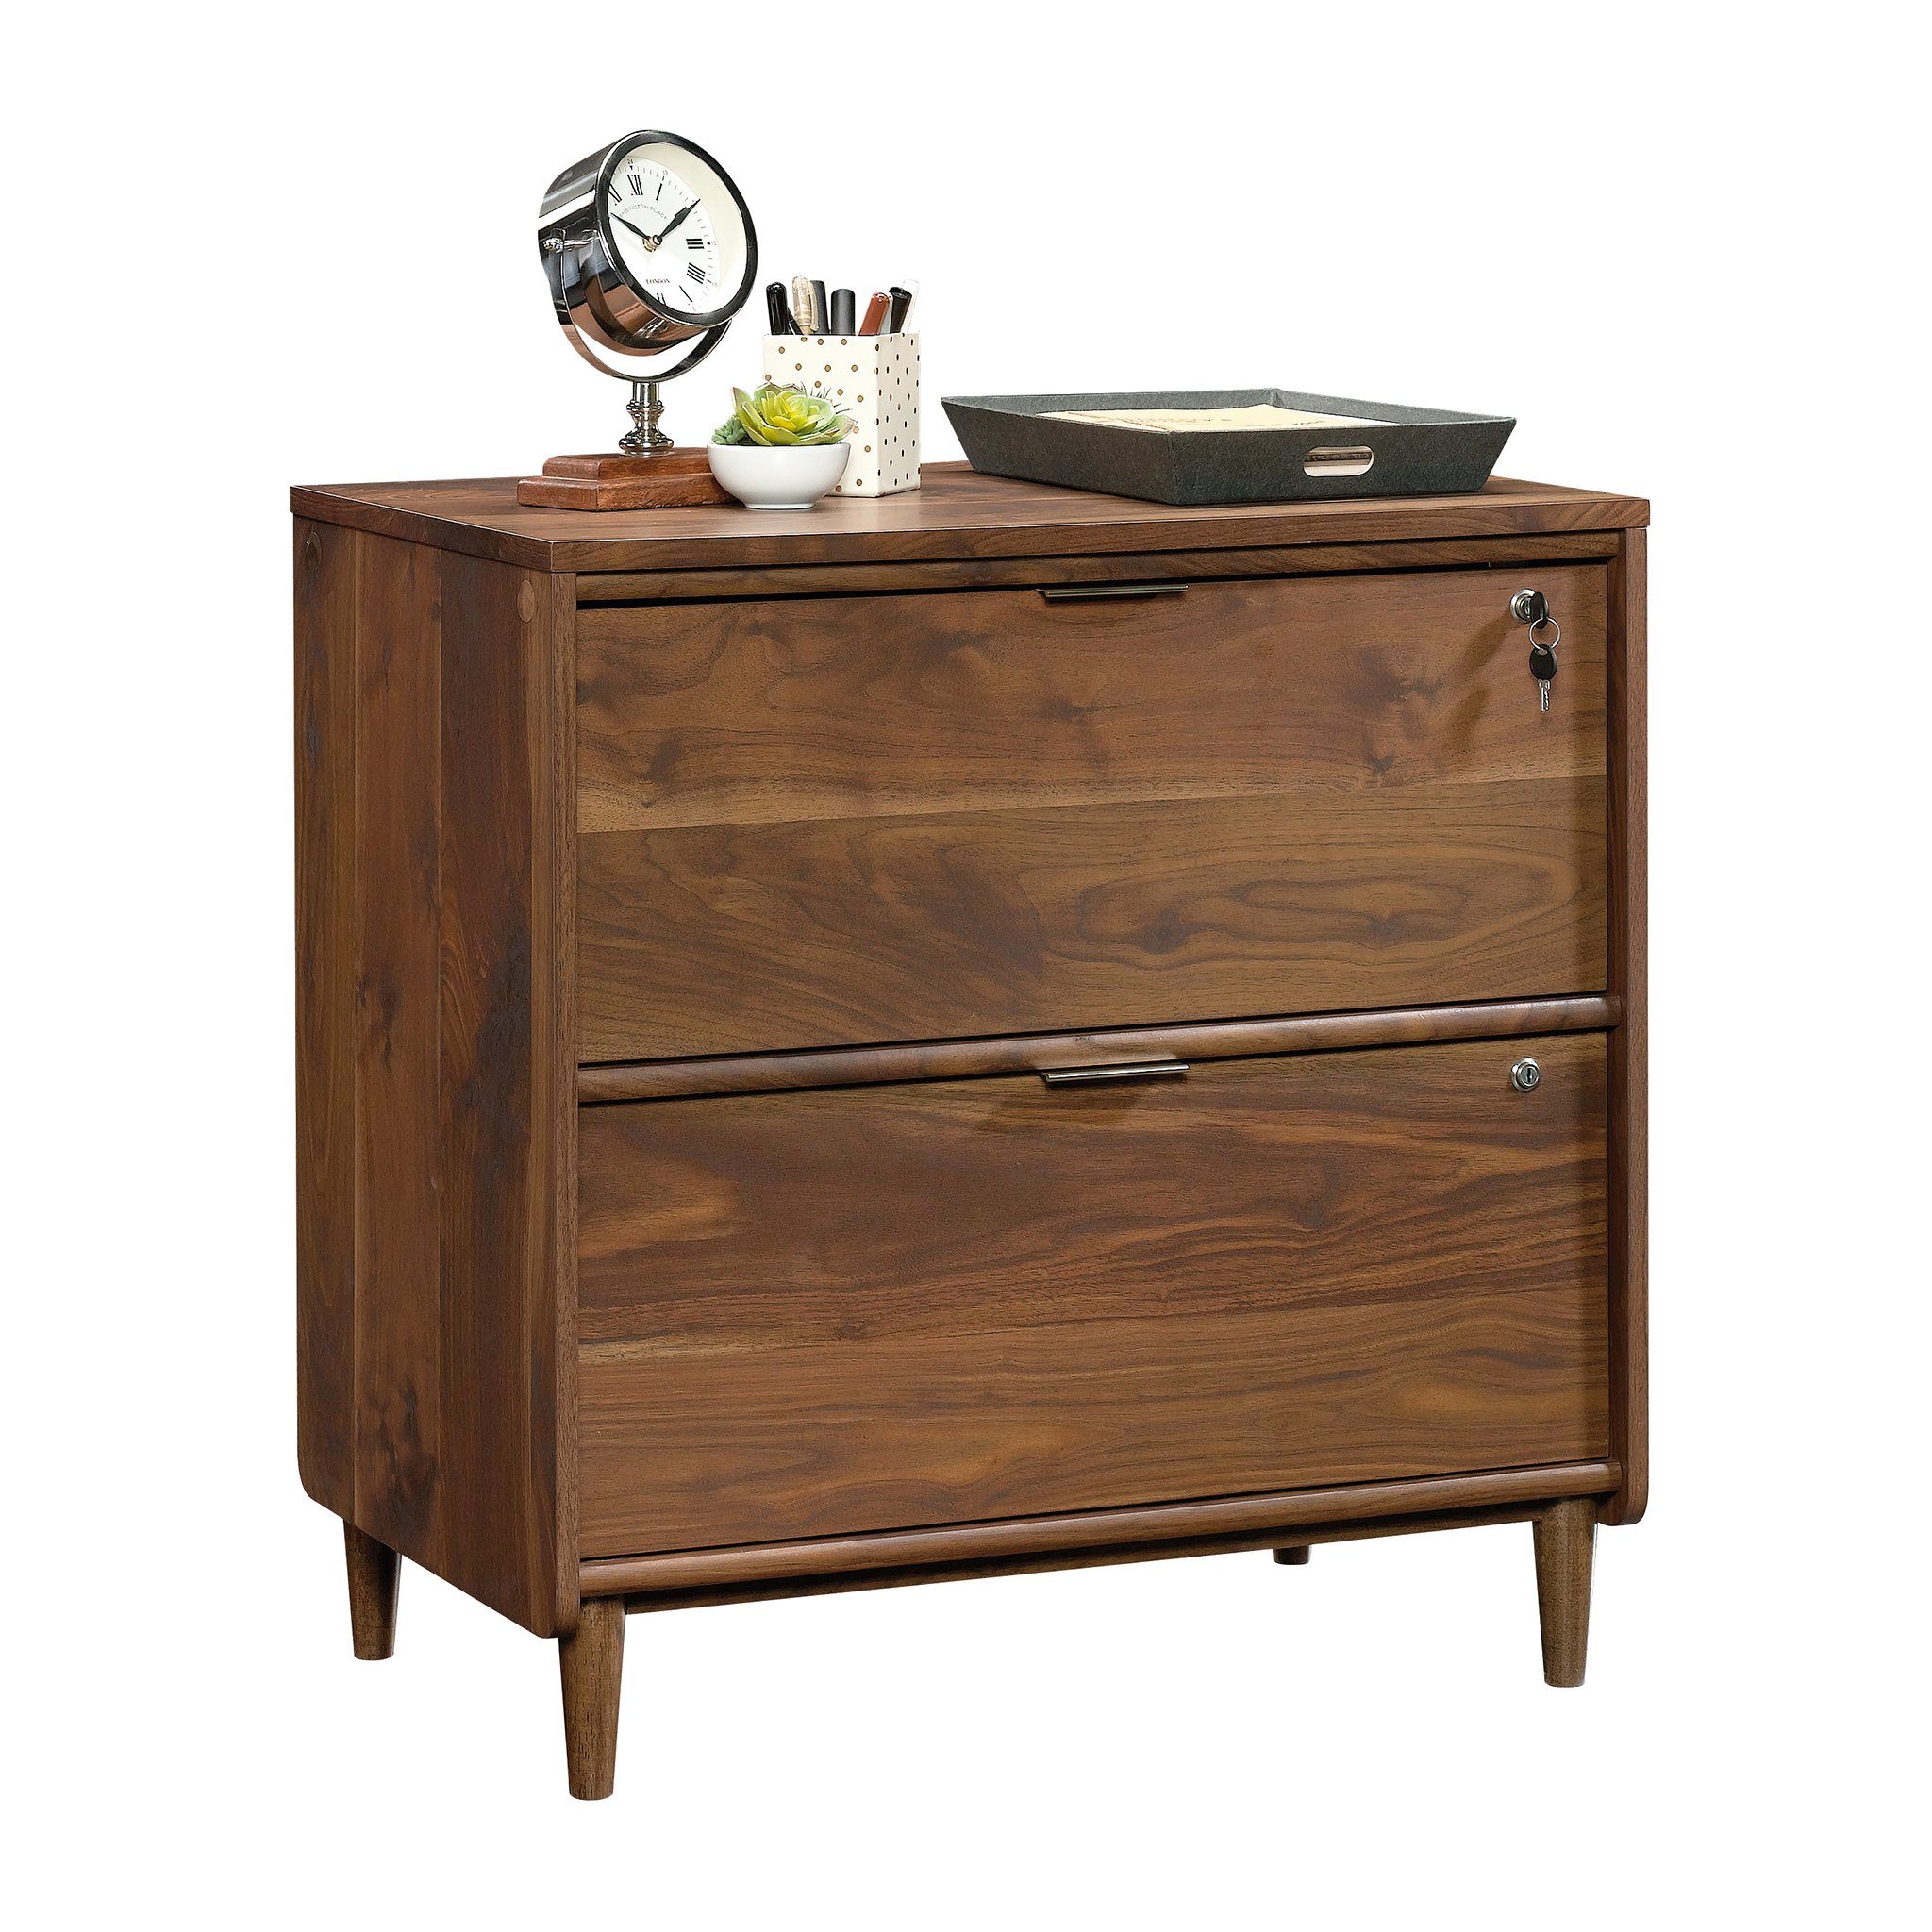 Sauder 421114 Clifford Place Lateral File, L: 29.53'' x W: 18.50'' x H: 30.28'', Grand Walnut finish by Sauder